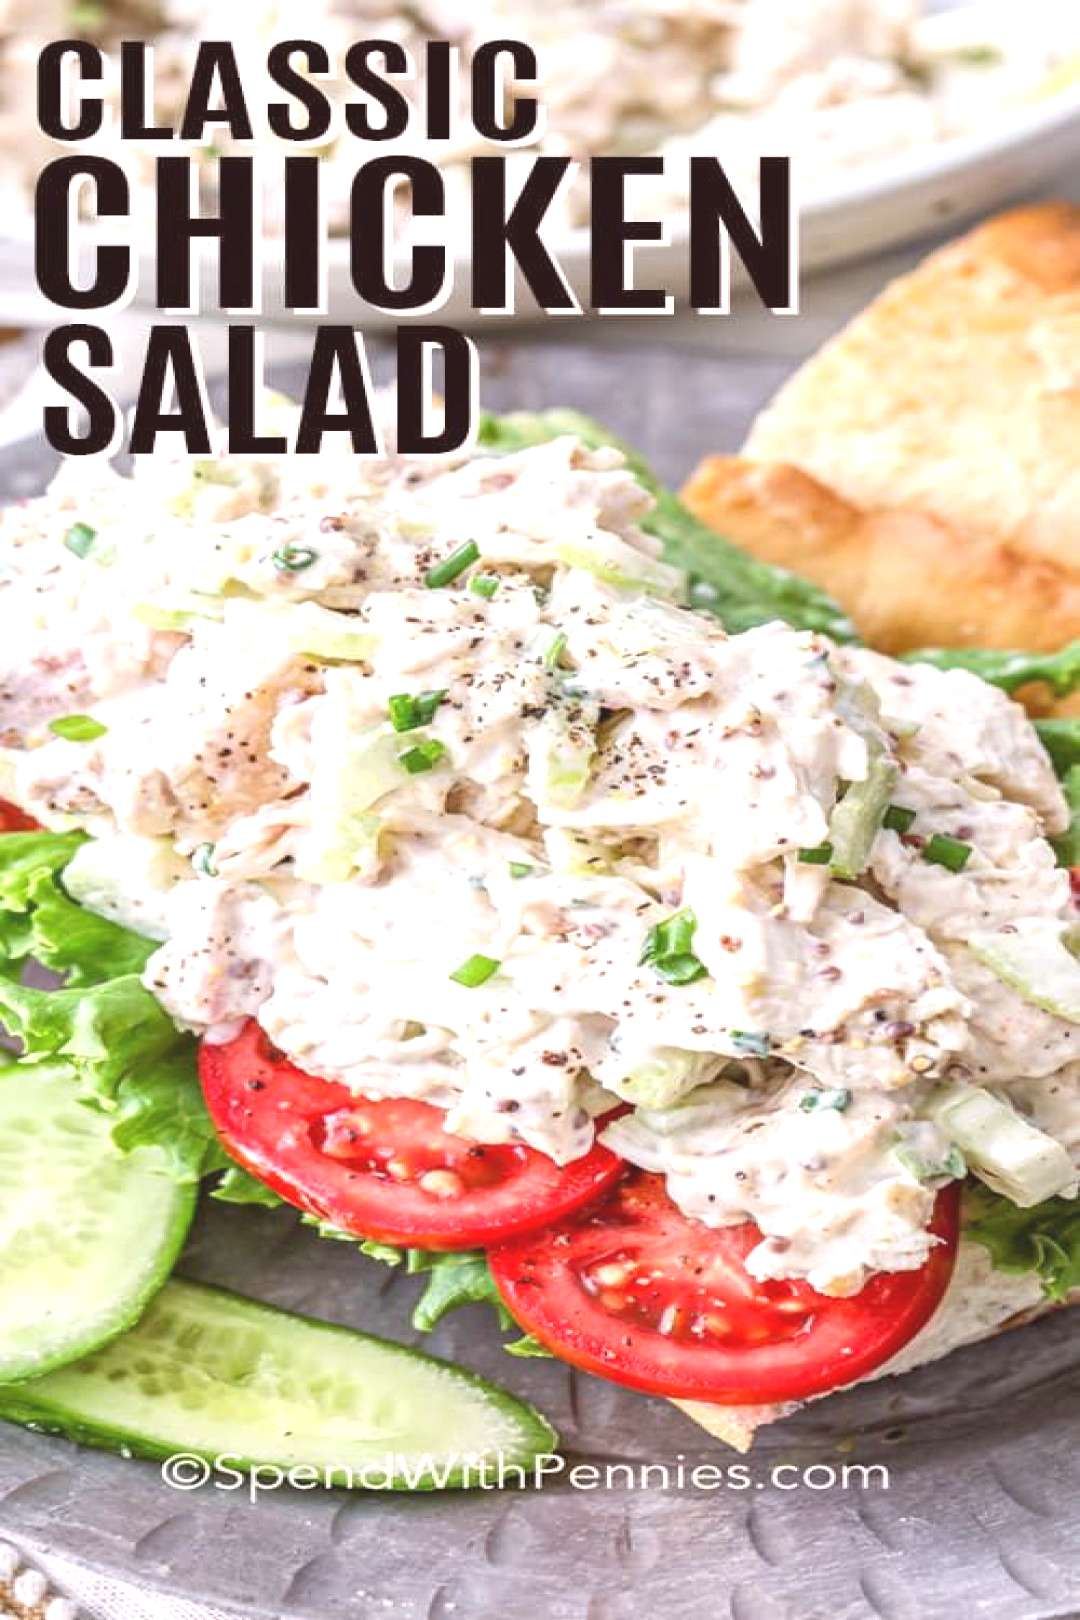 Classic Chicken Salad - Spend With Pennies,A classic chicken salad sandwich is made with chic... Cl